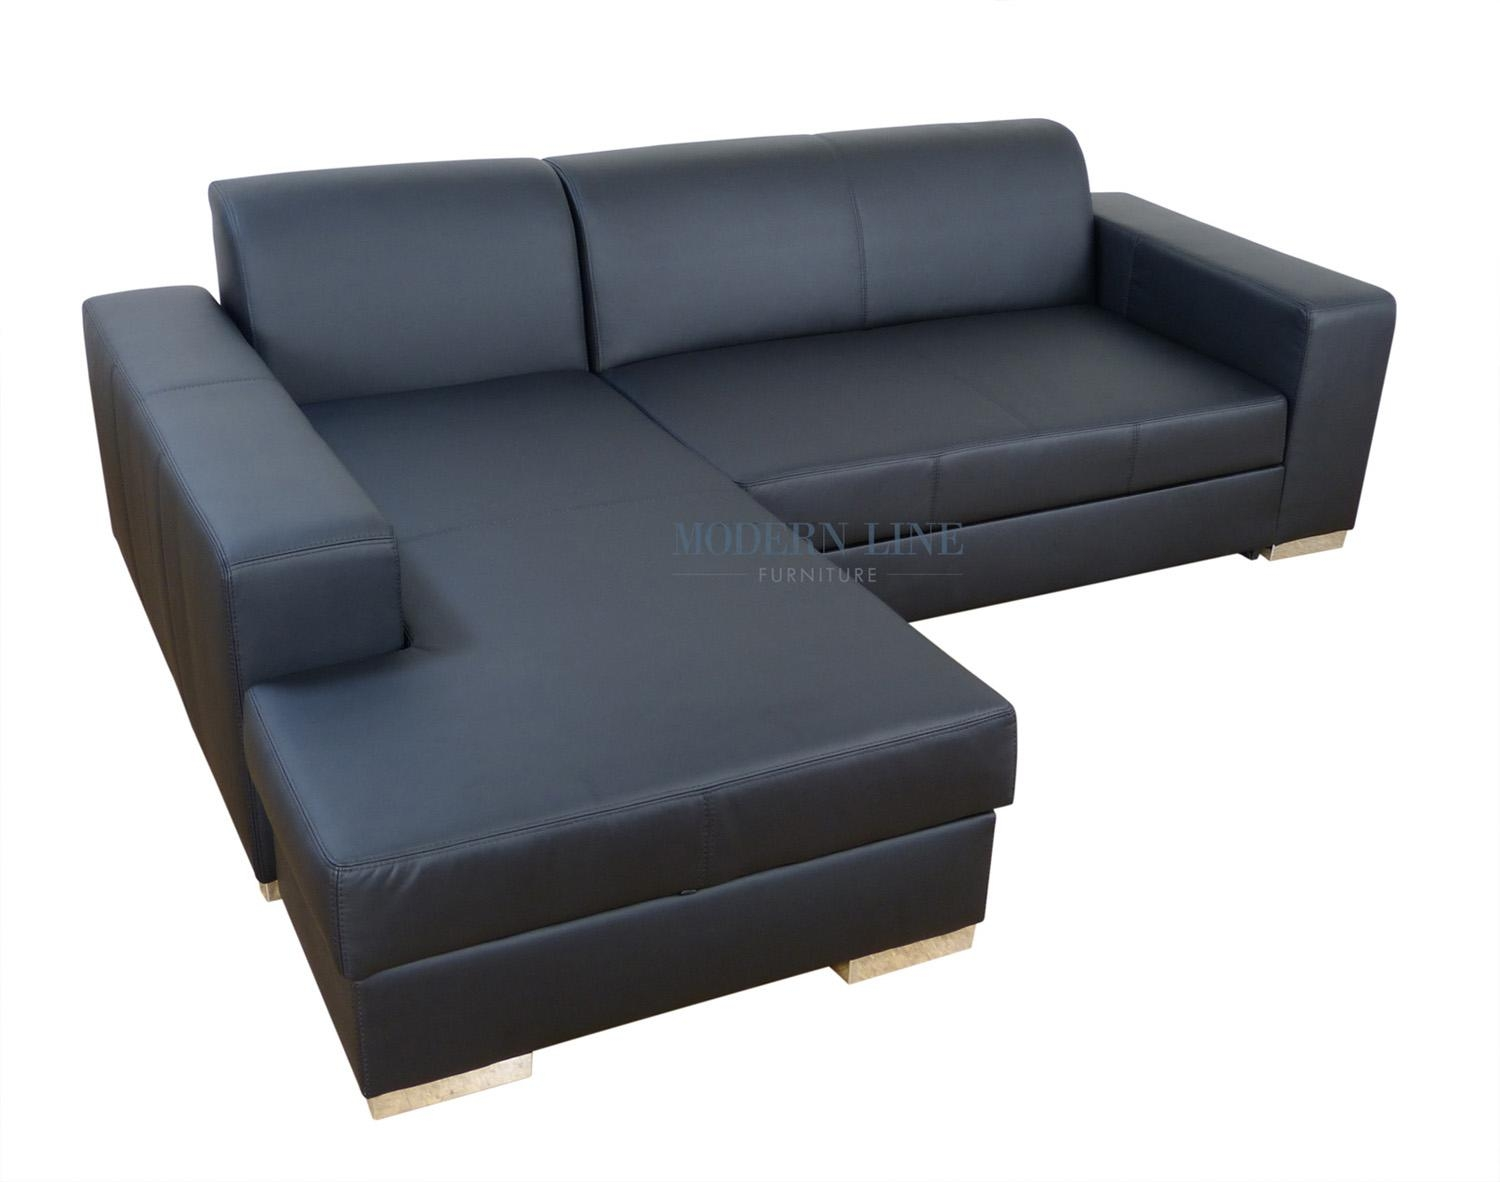 Modern Line Furniture – Commercial Furniture – Custom Made Intended For Sectional Sofa With Storage (View 13 of 20)